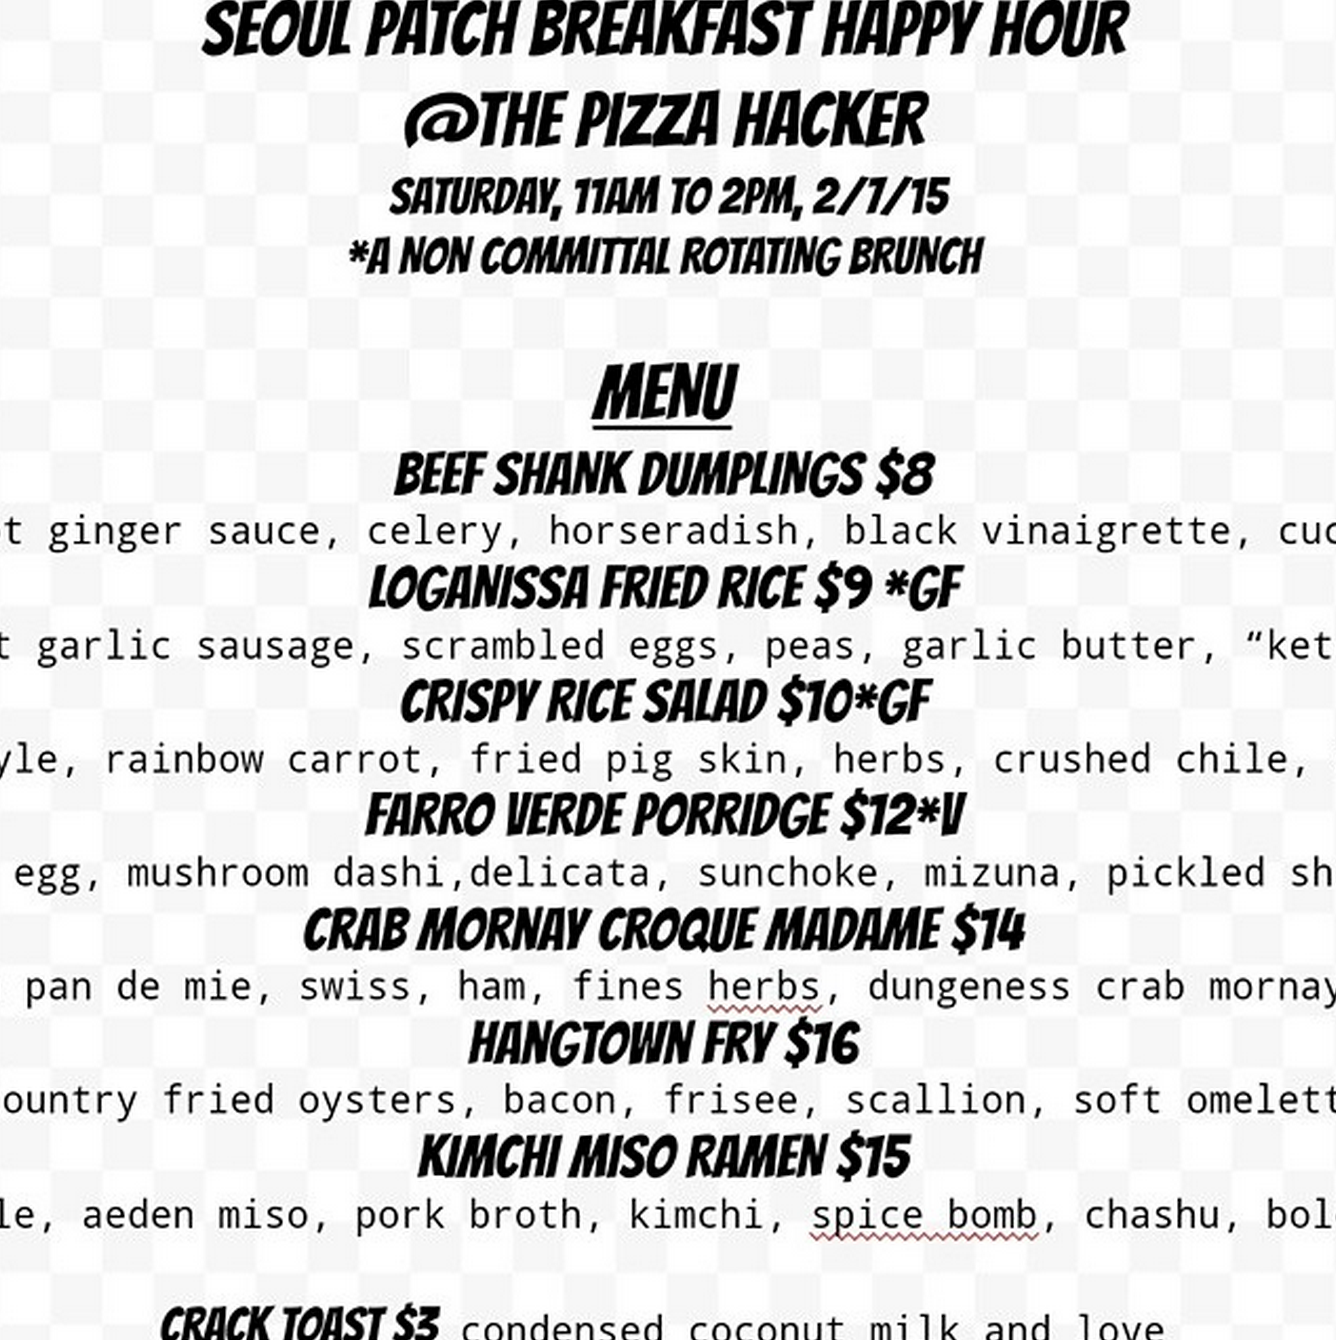 Check Out The Menu For The Seoul Patch Breakfast Happy Hour This Saturday At Pizza Hacker Mission Mission